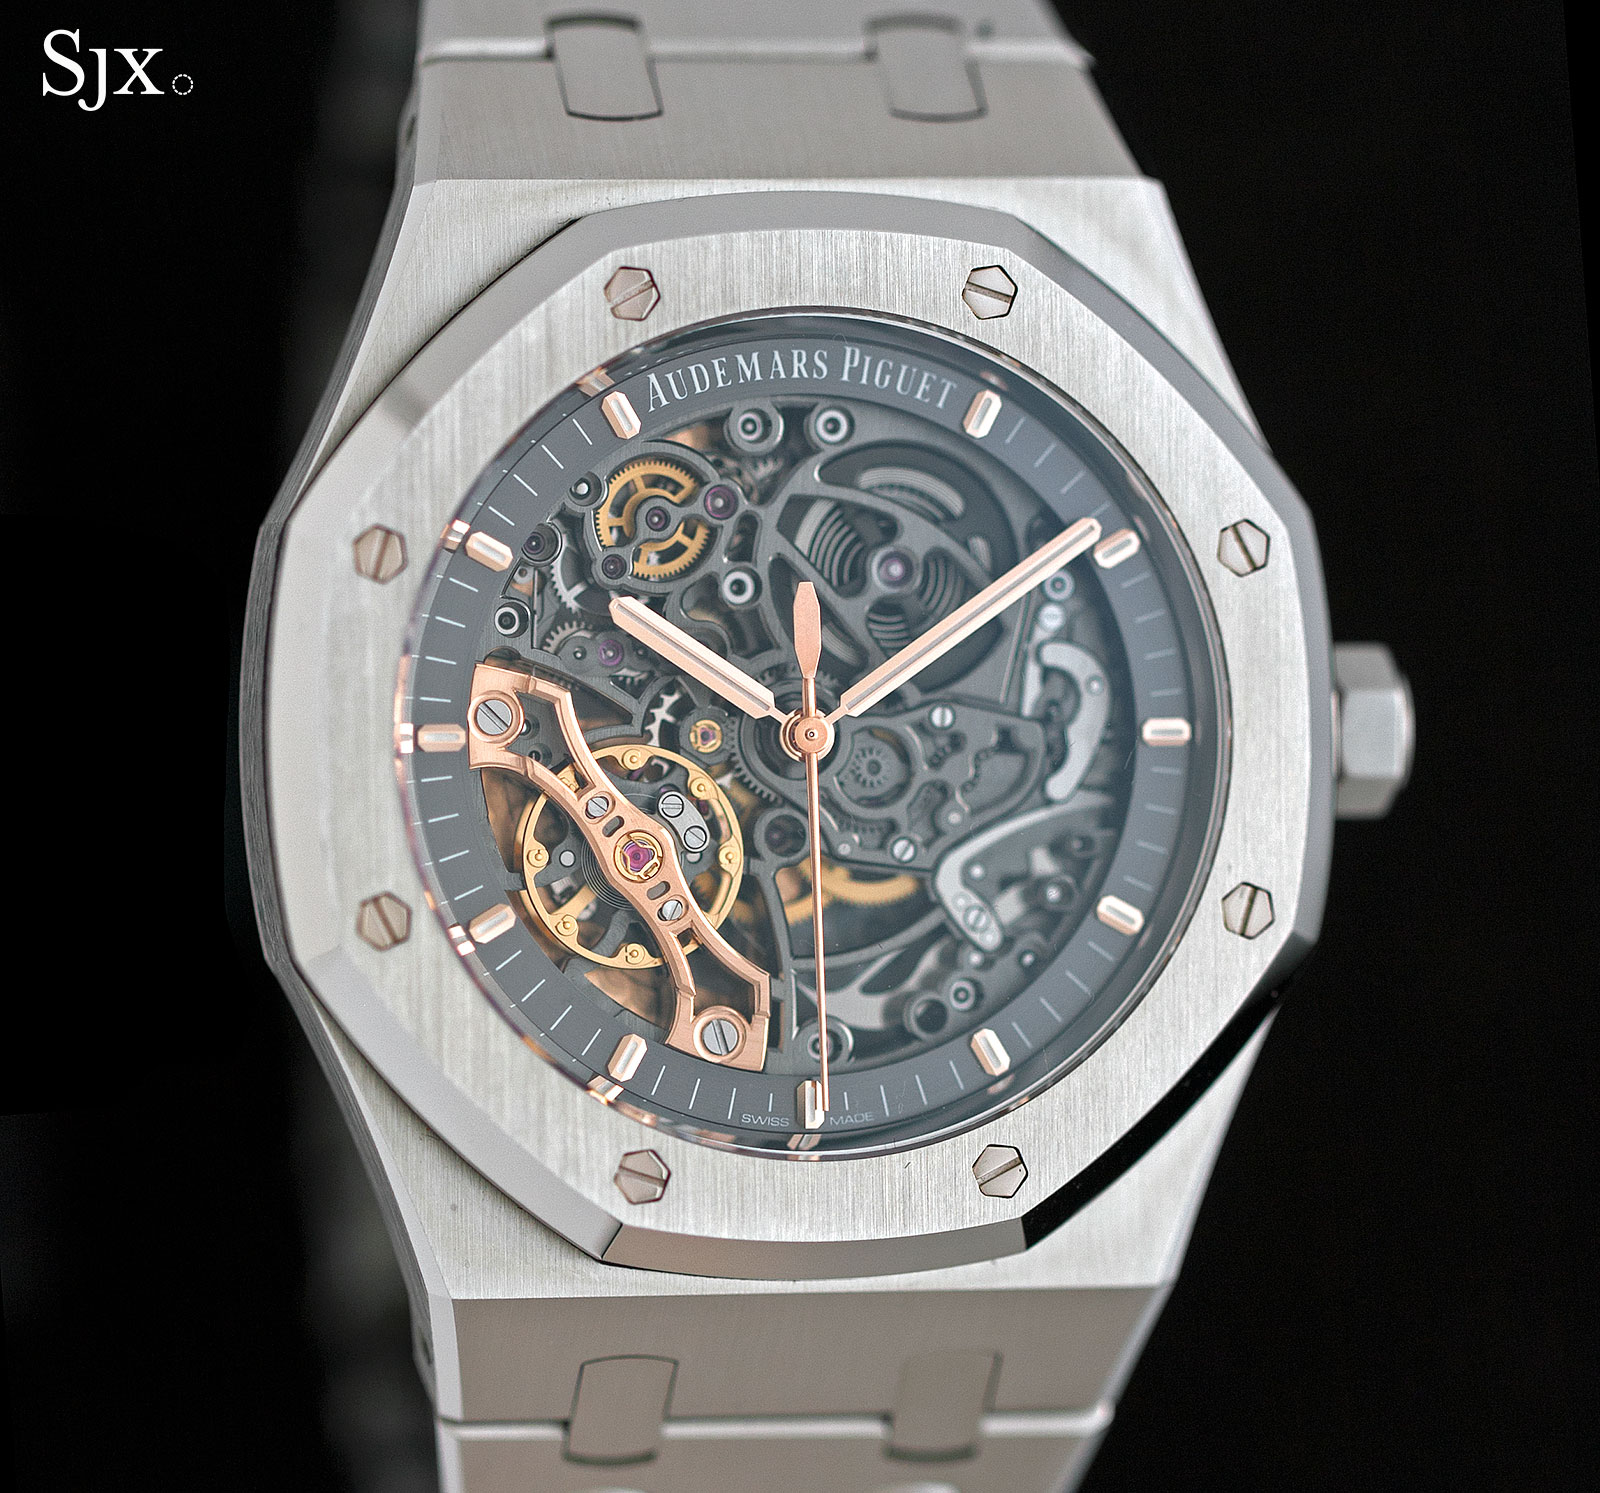 95b5afdec9 A Detailed Look at the Audemars Piguet Royal Oak Double Balance Wheel  Openworked